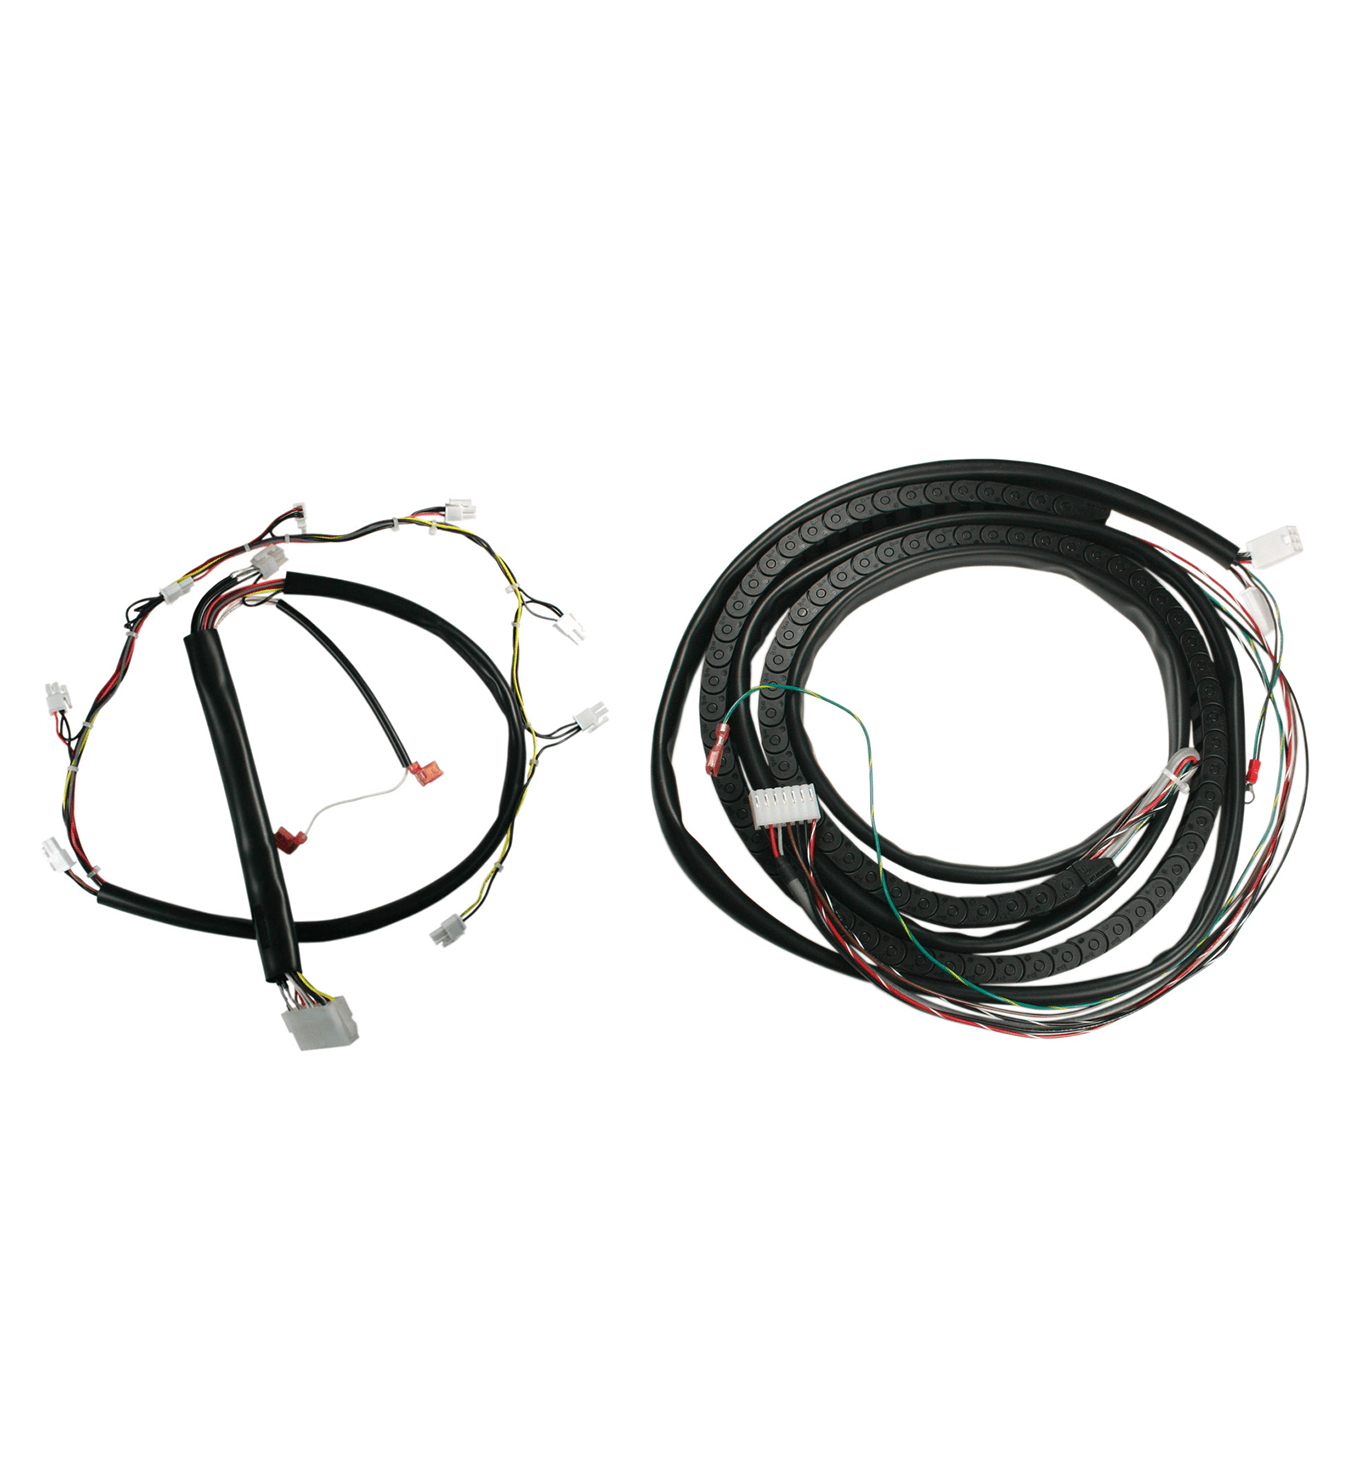 Cable And Wire Harness Assemblies